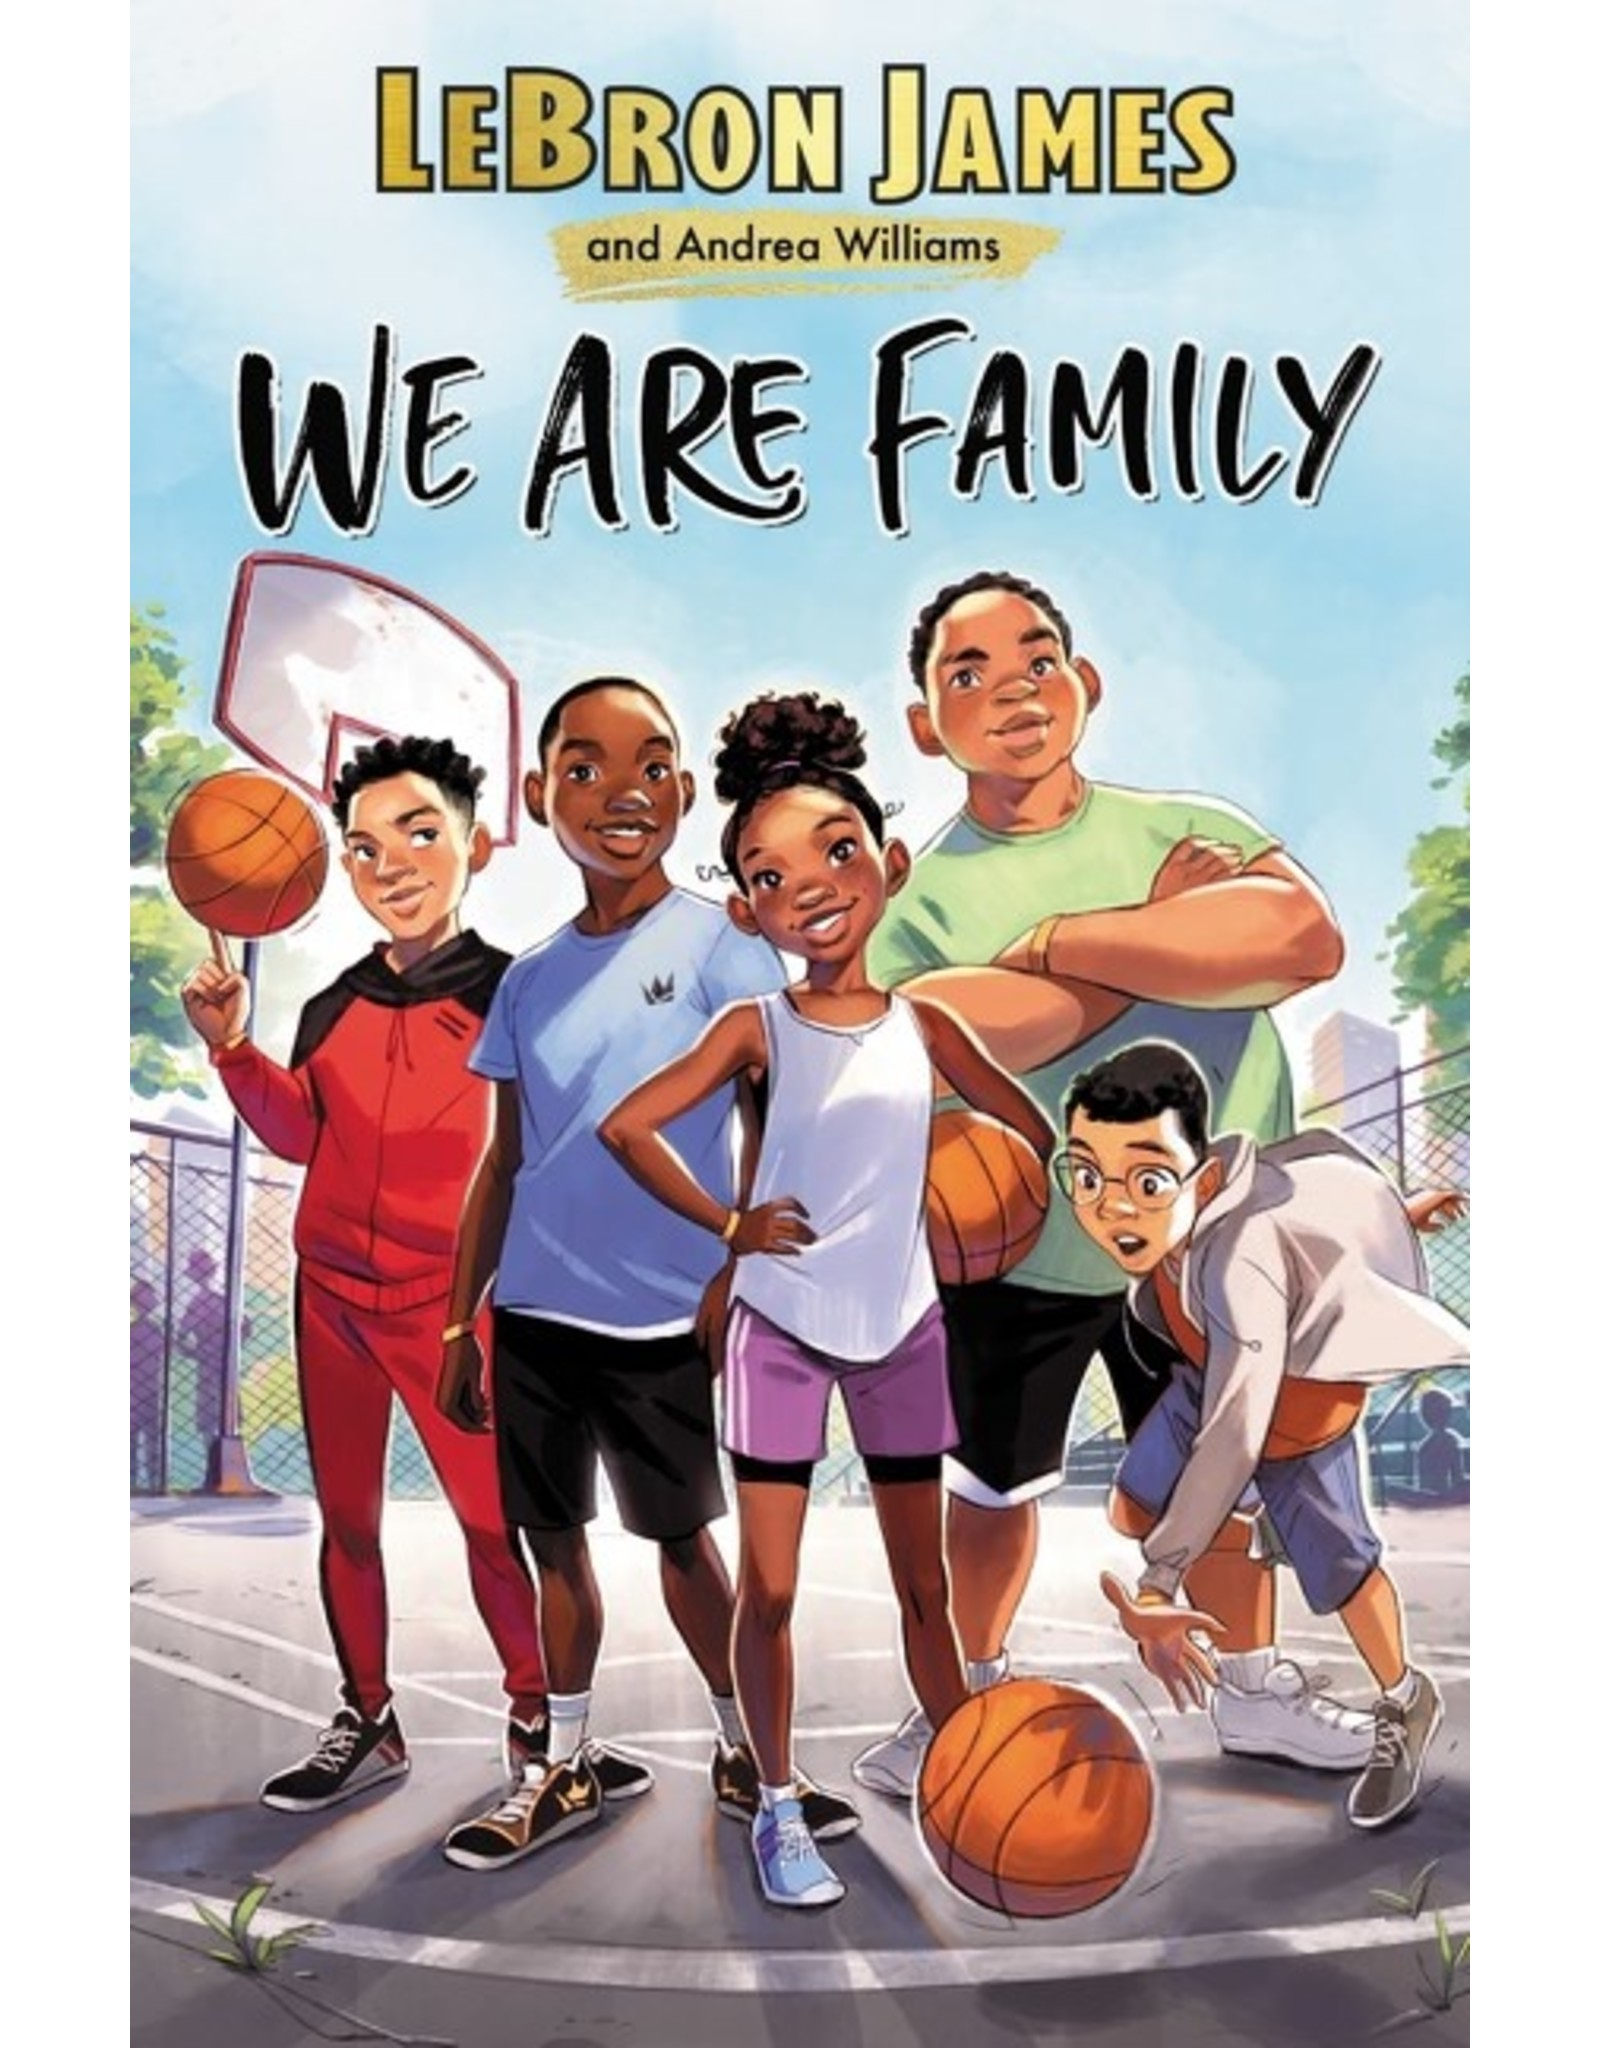 Books We Are Family by Lebron James and Andrea Williams